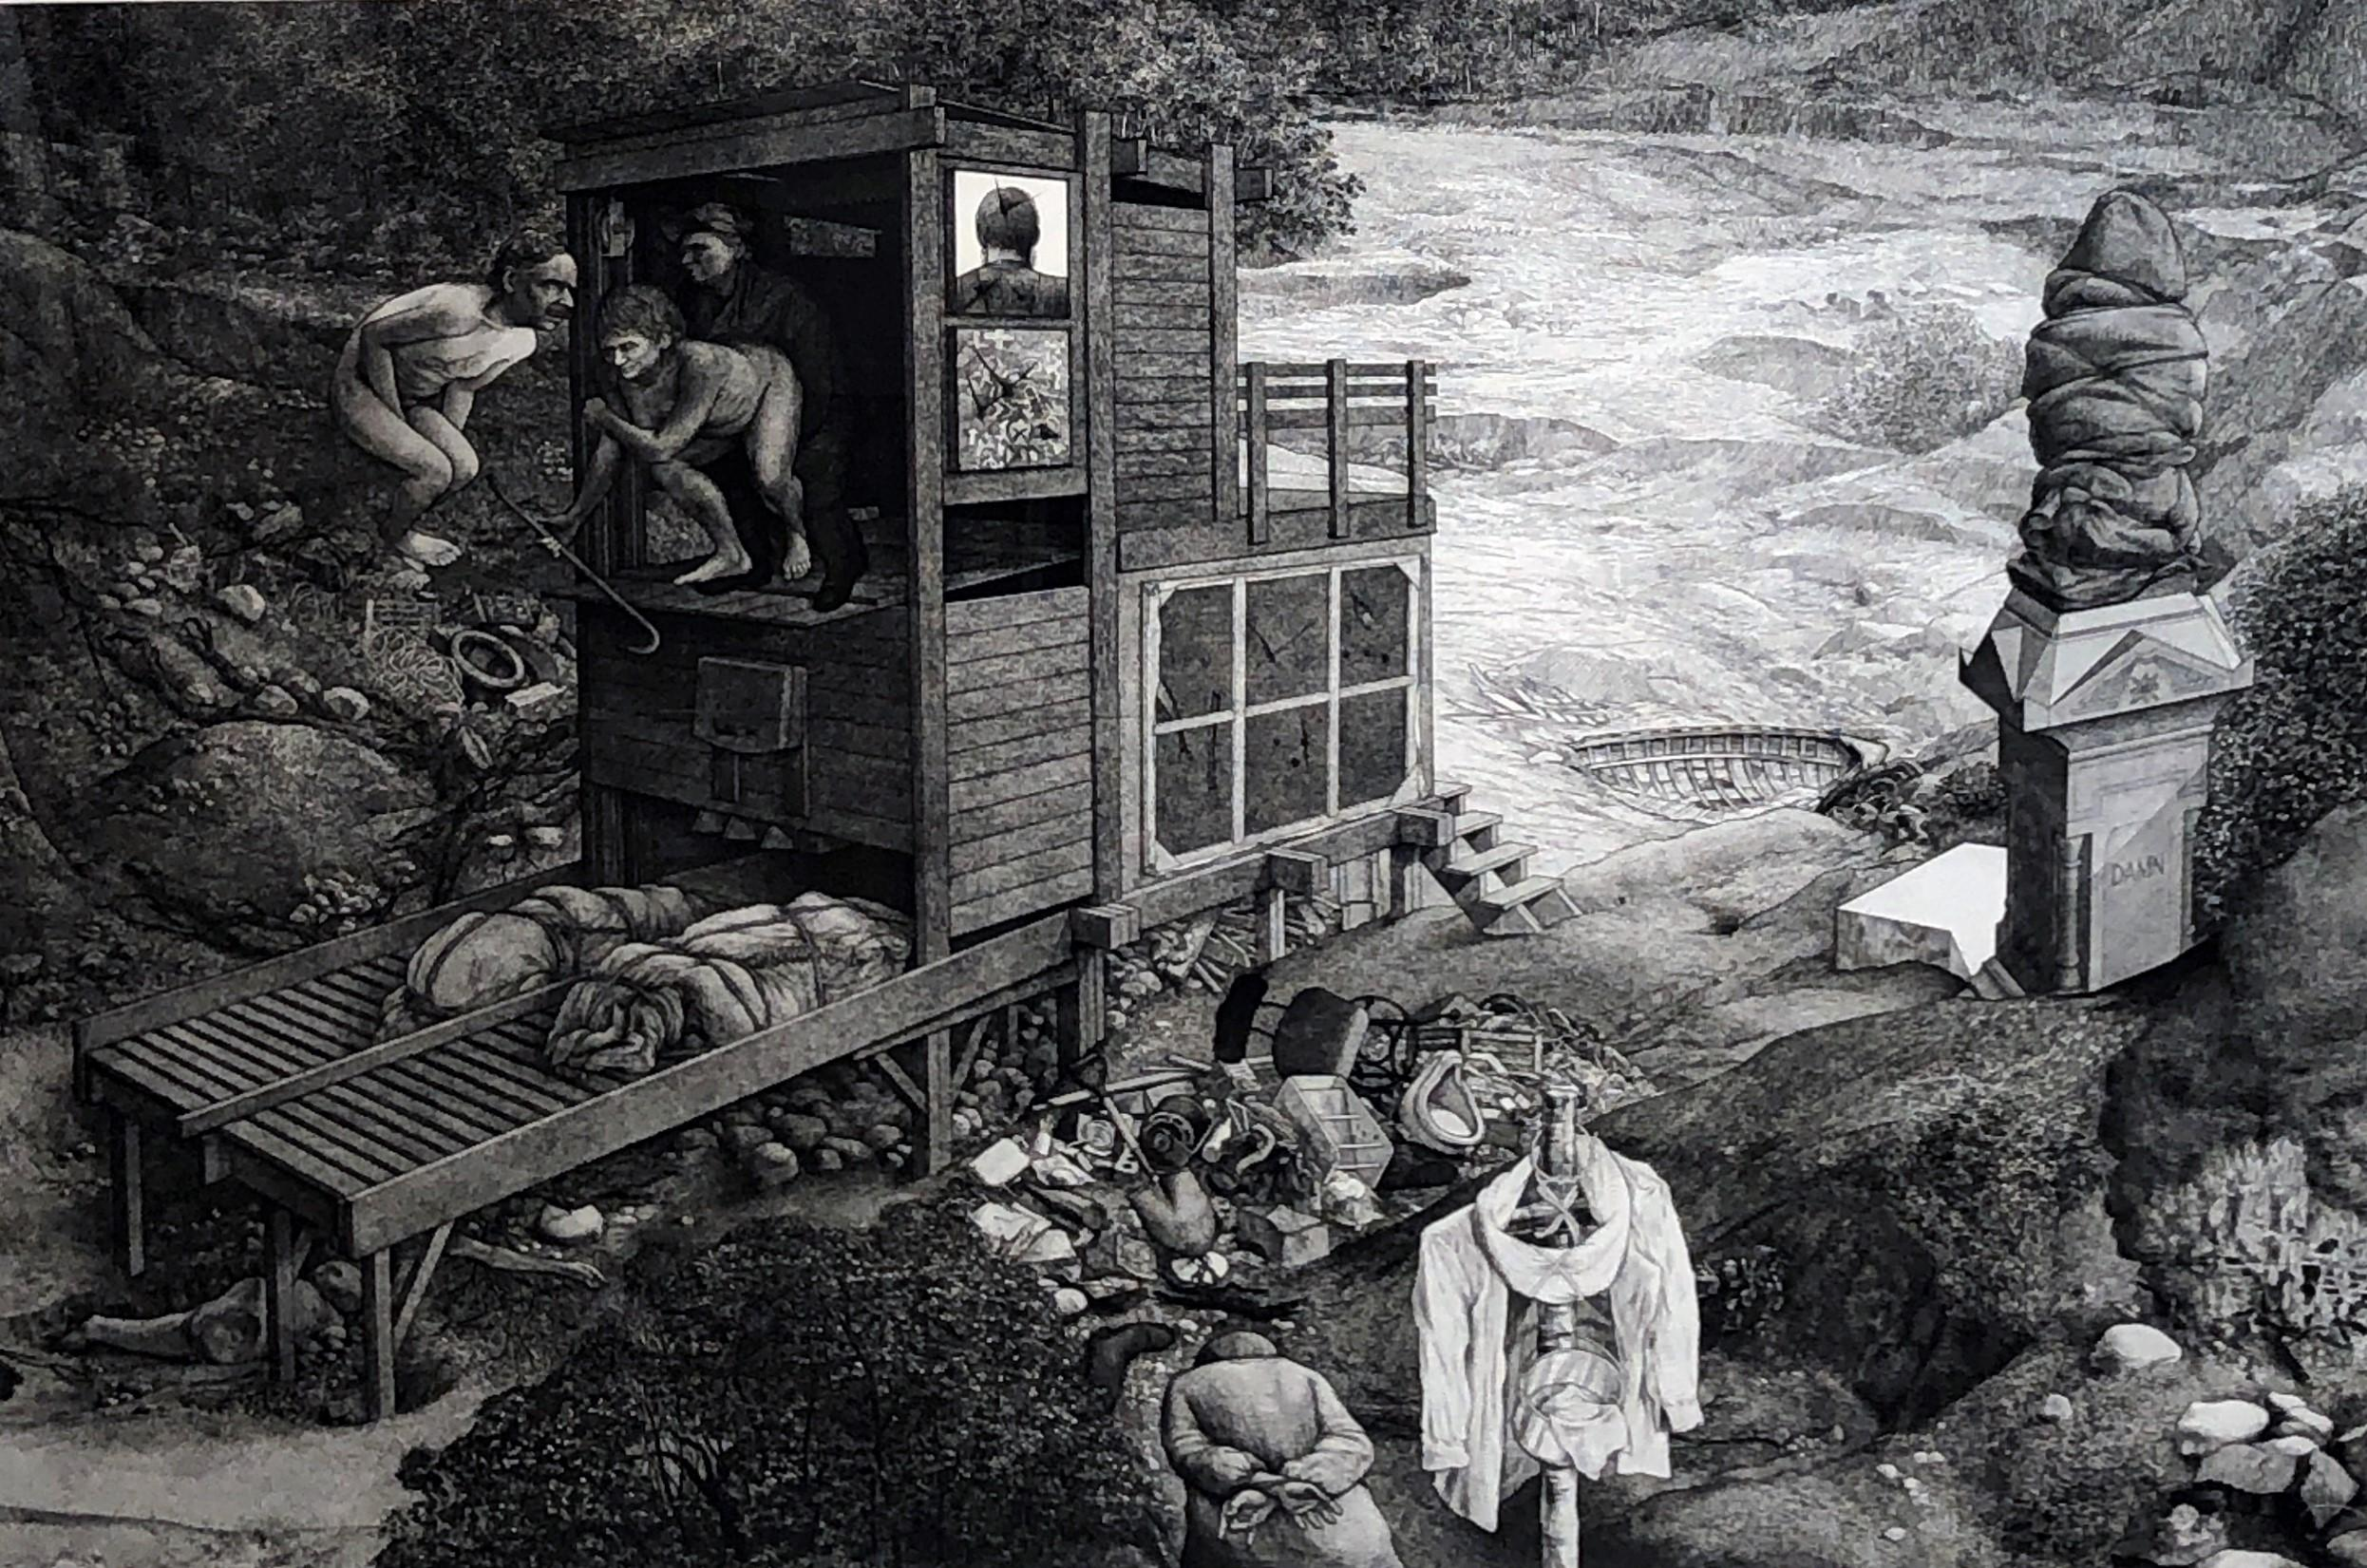 Monuments - Highly Detailed Allegorical, Surreal Etching with Multiple Figures